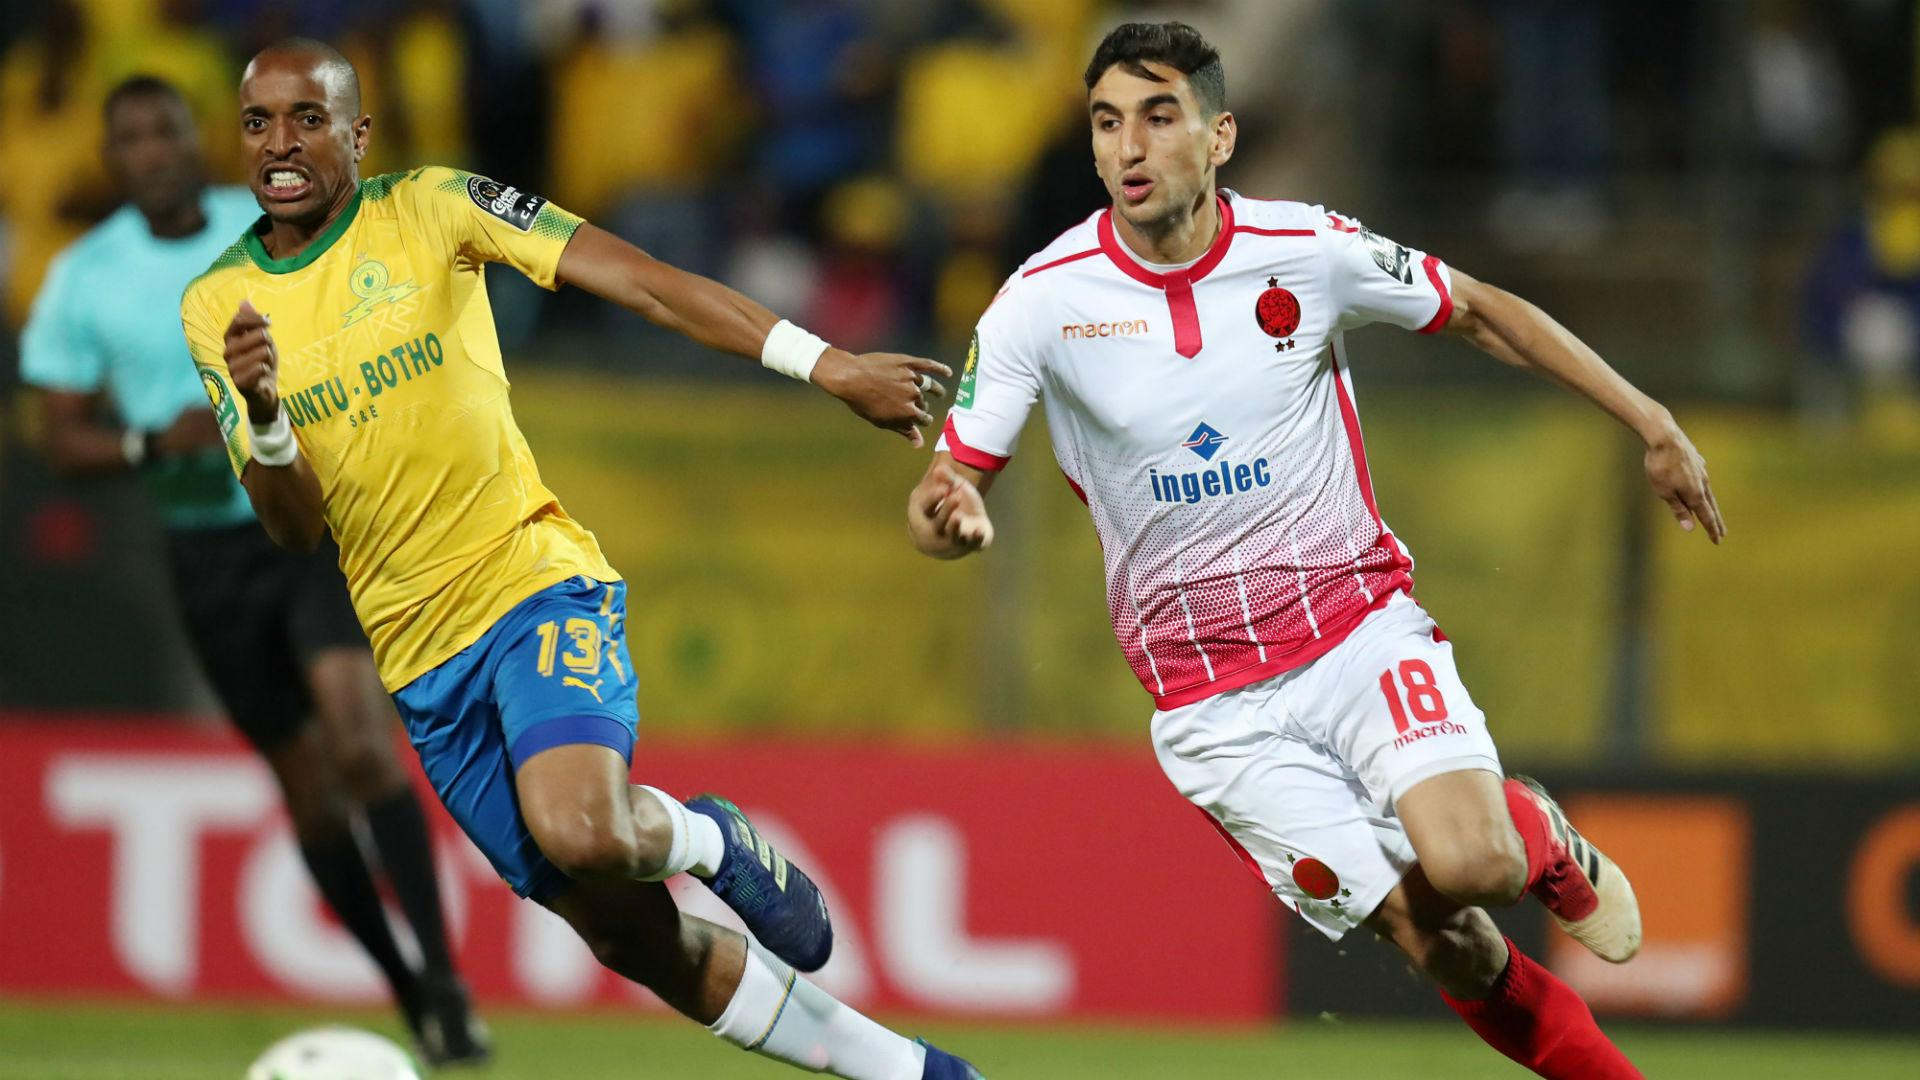 Caf Champions League Group C Review: Horoya top the standings as